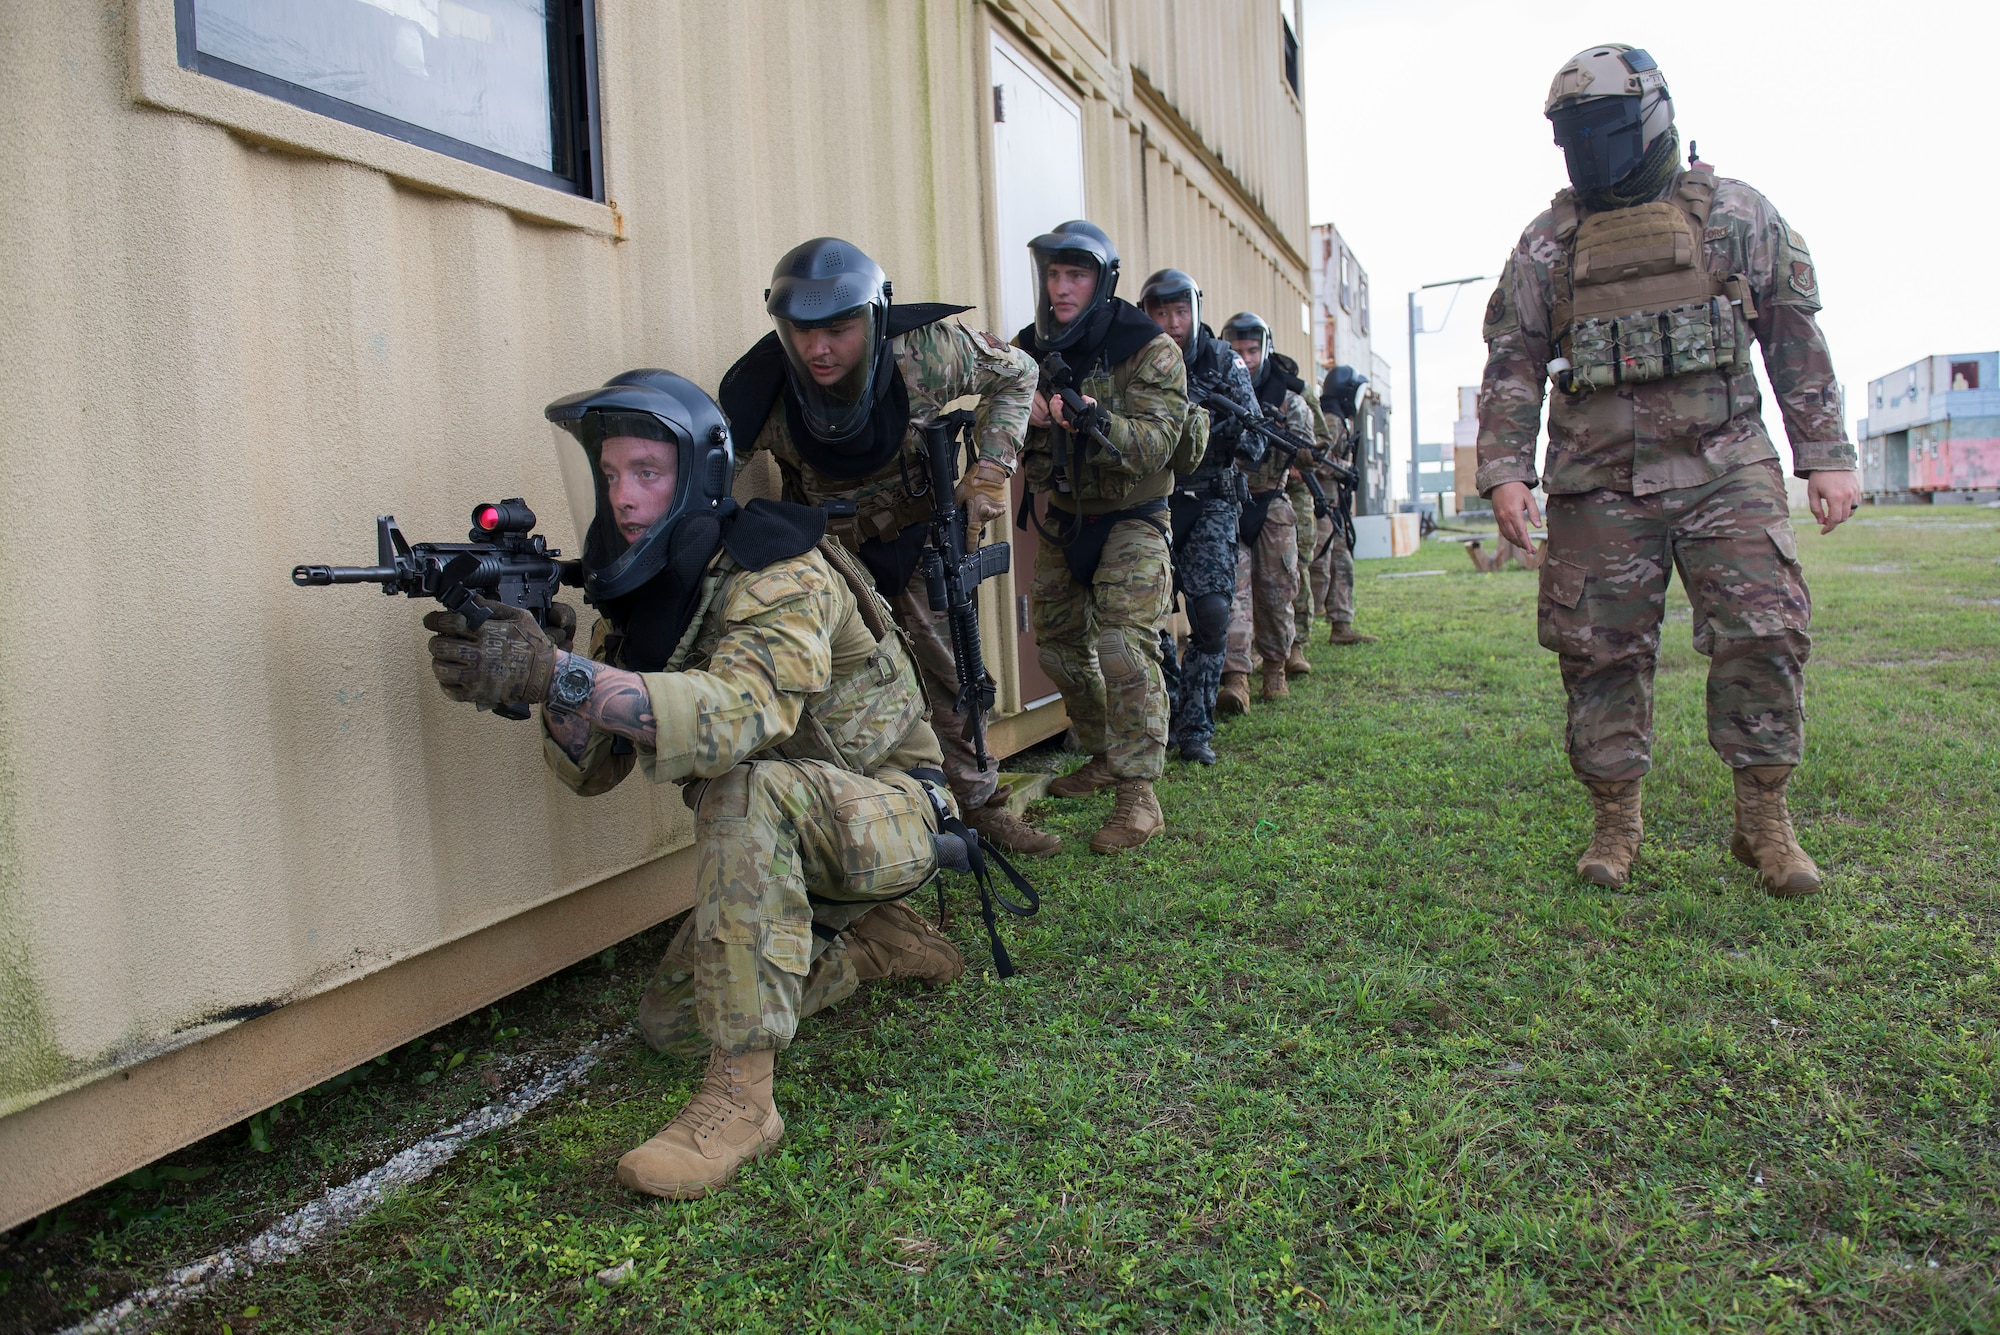 Members of the Royal Australian Air Force, U.S. Air Force, and Koku Jieitai (Japan Air Self-Defense Force) participate in a simulated live fire scenario during Pacific Defender 20-1 at the Pacific Regional Training Center near Andersen Air Force Base, Guam, Feb. 11, 2020.